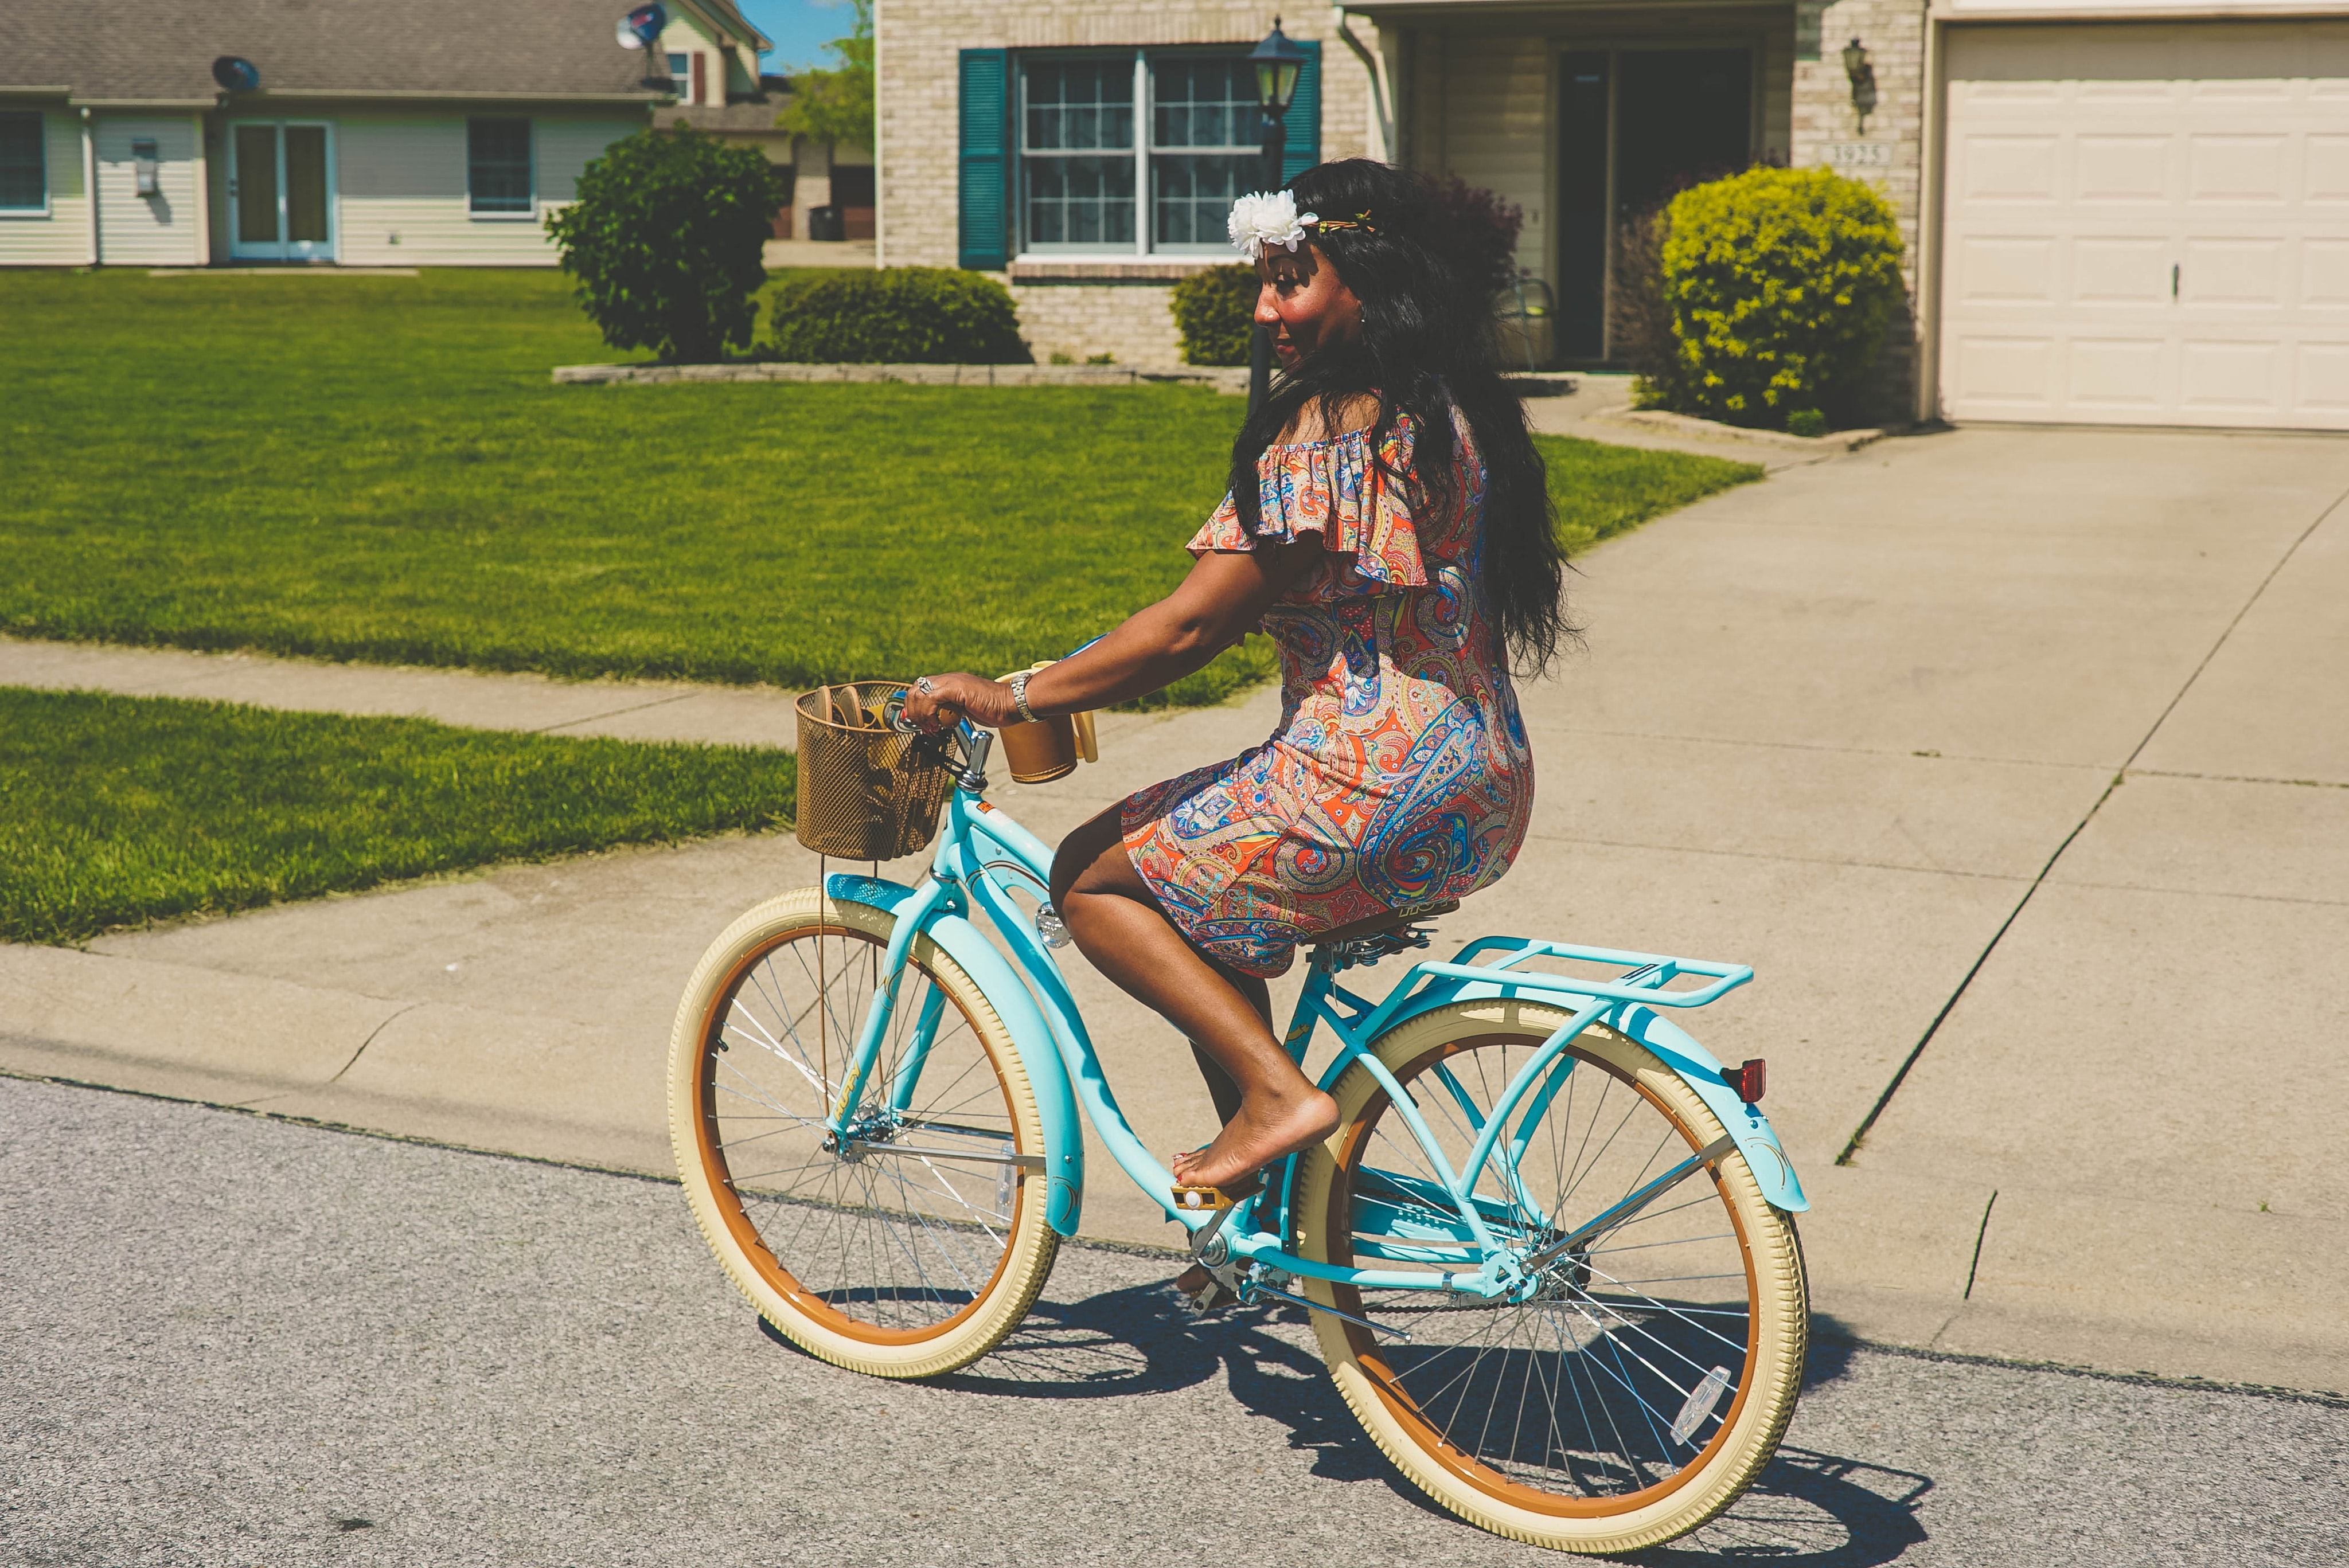 woman in brown and blue dress riding blue bicycle